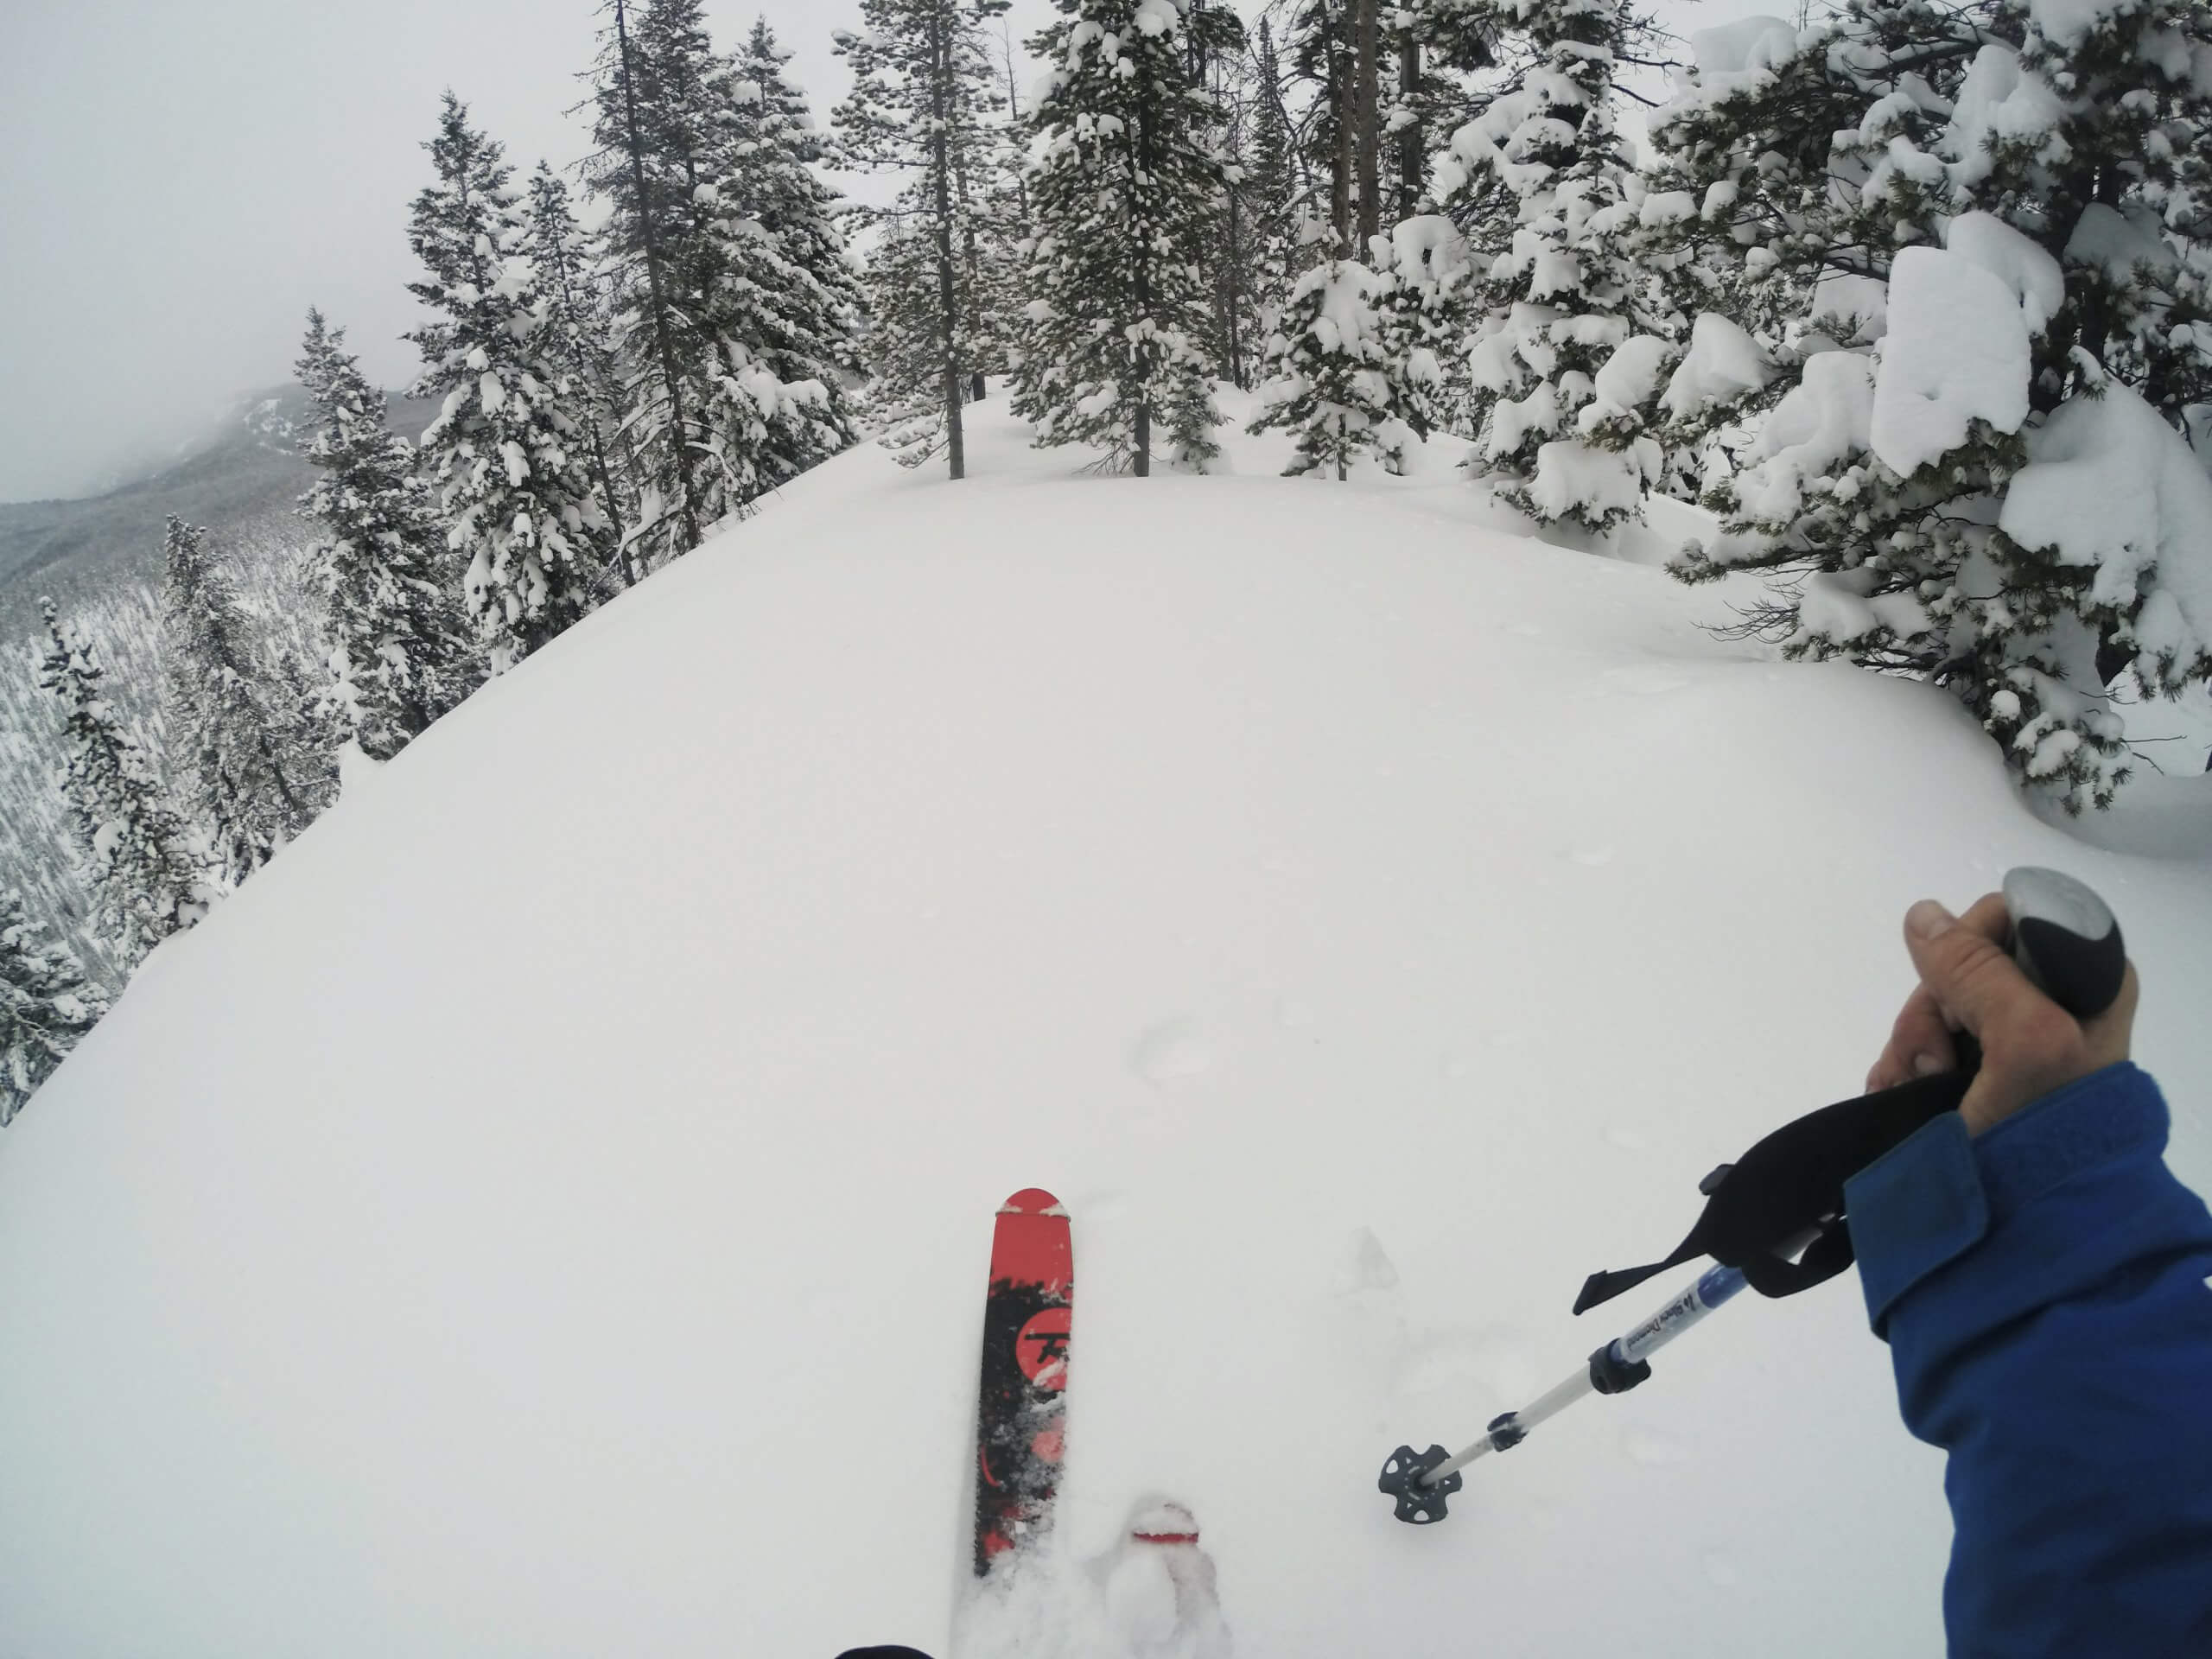 backcountry skier on top of mountain